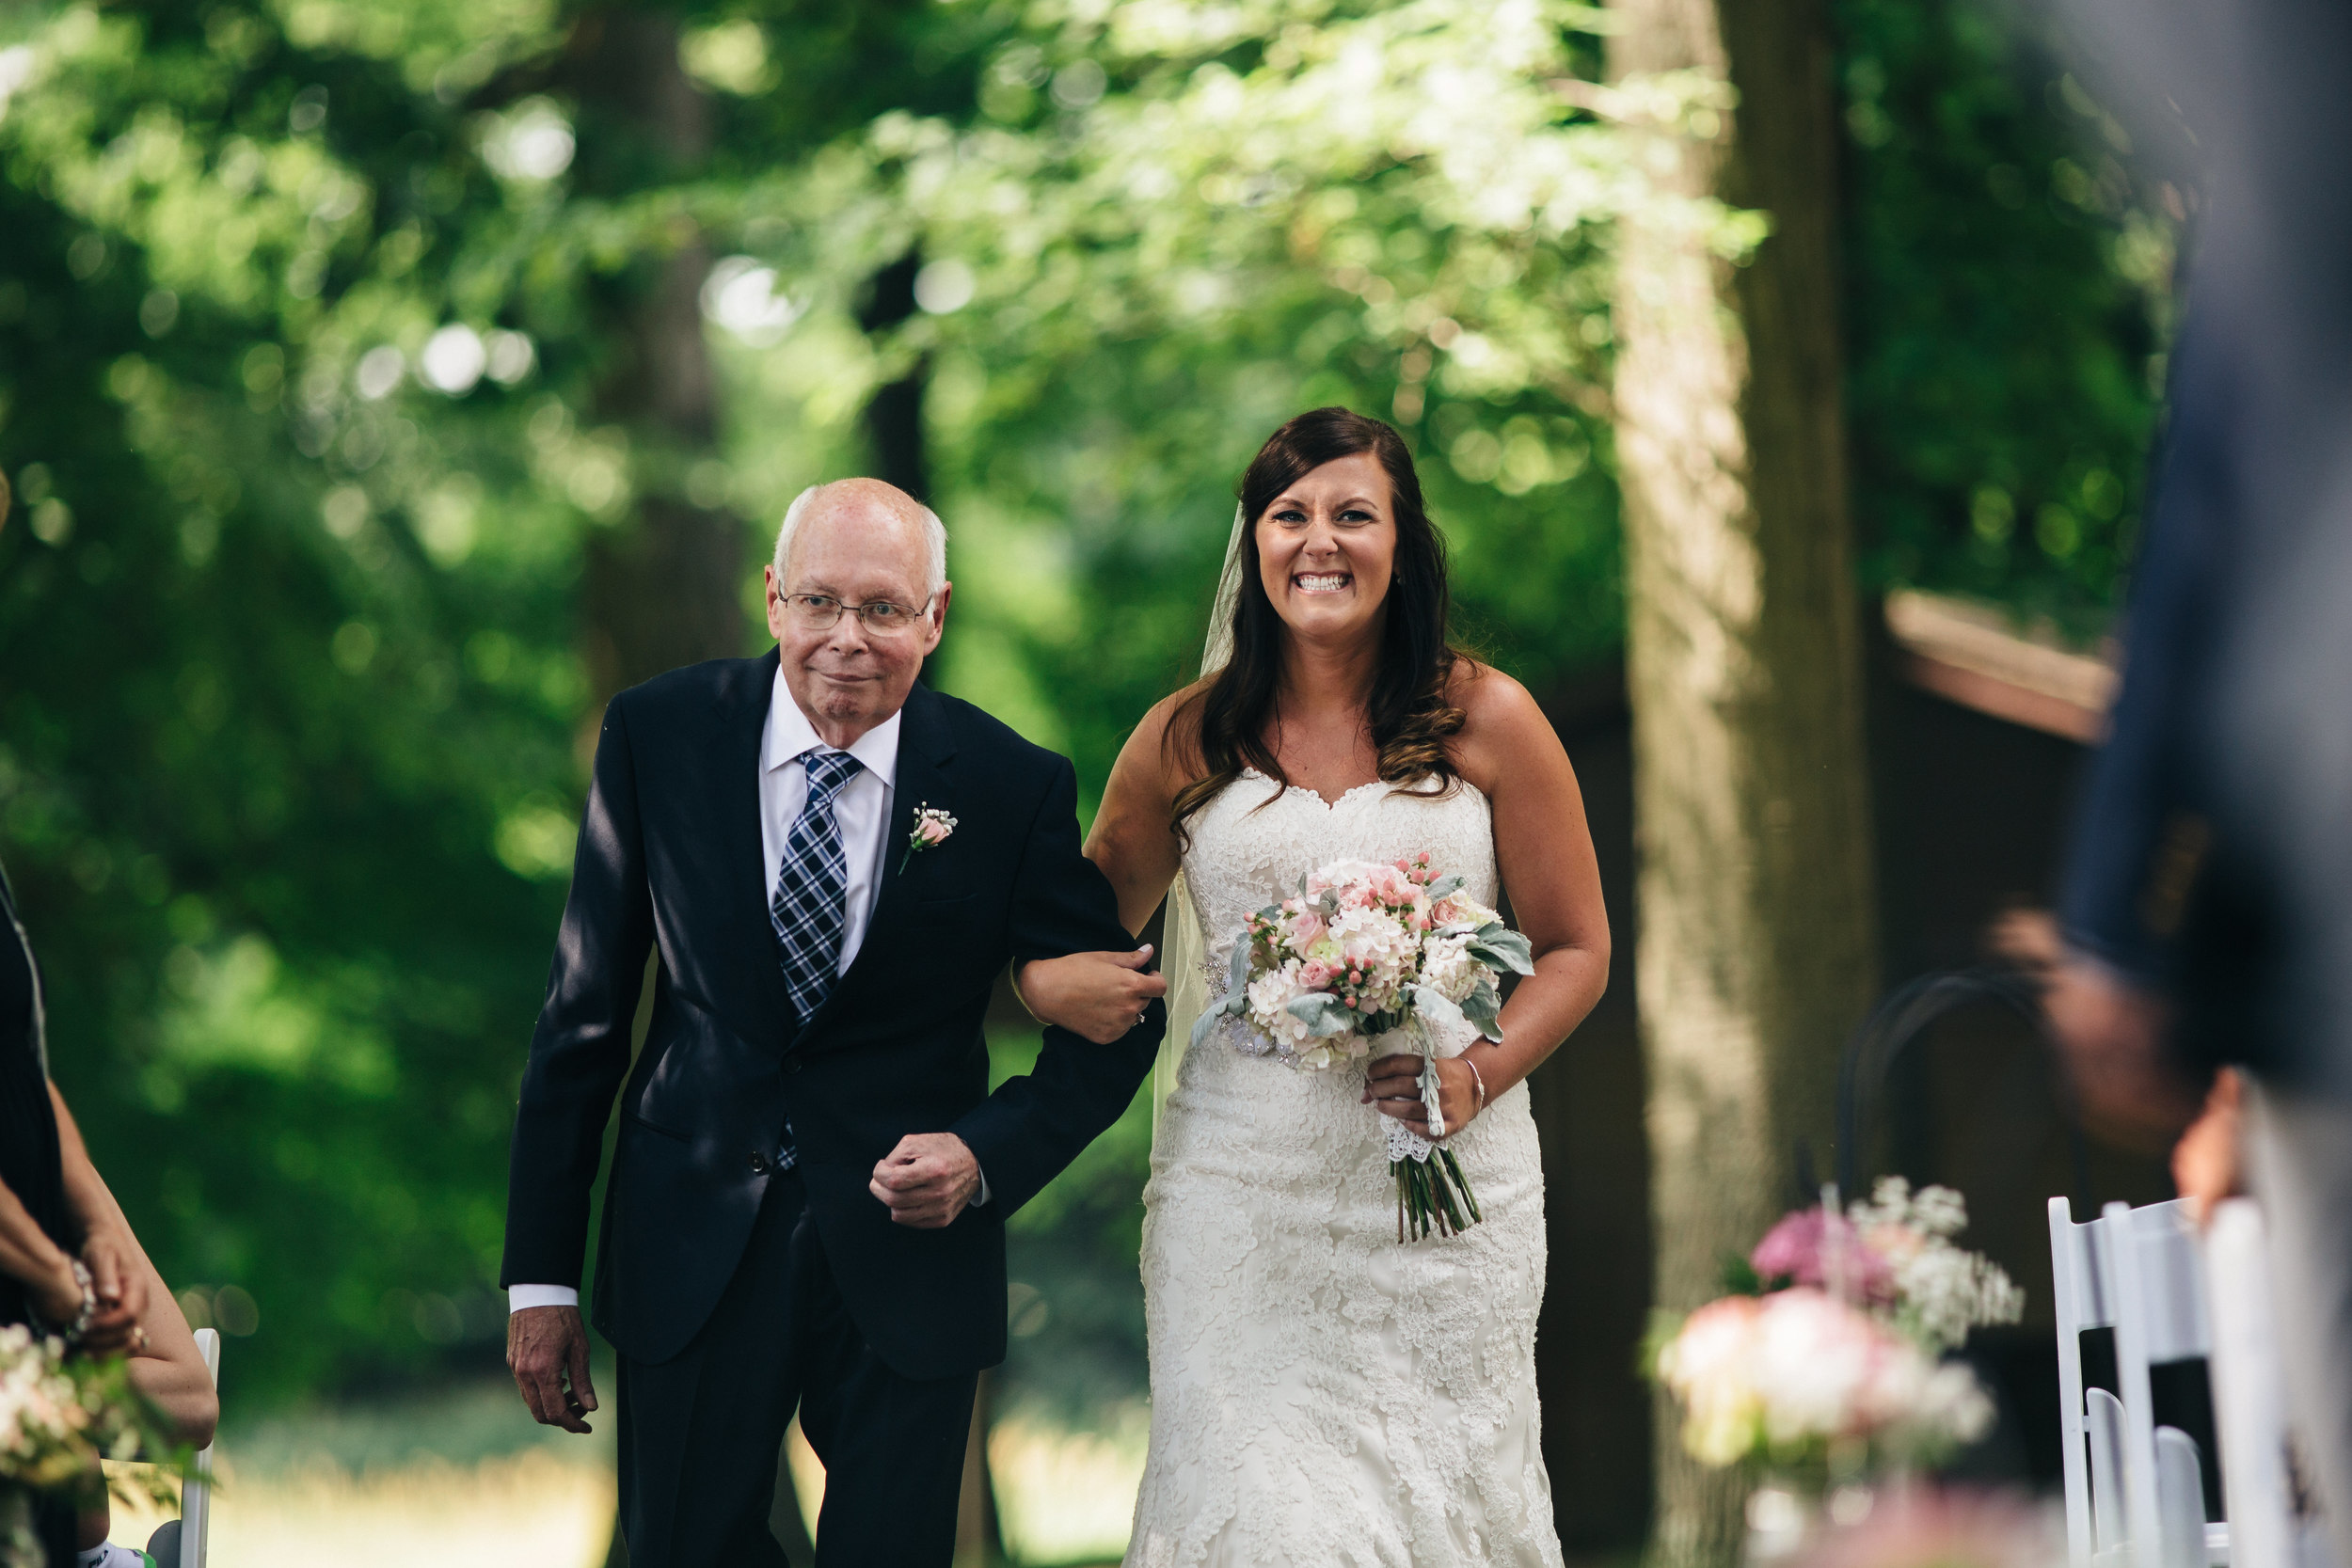 Bride walks down the aisle with her father at Hoover Park.